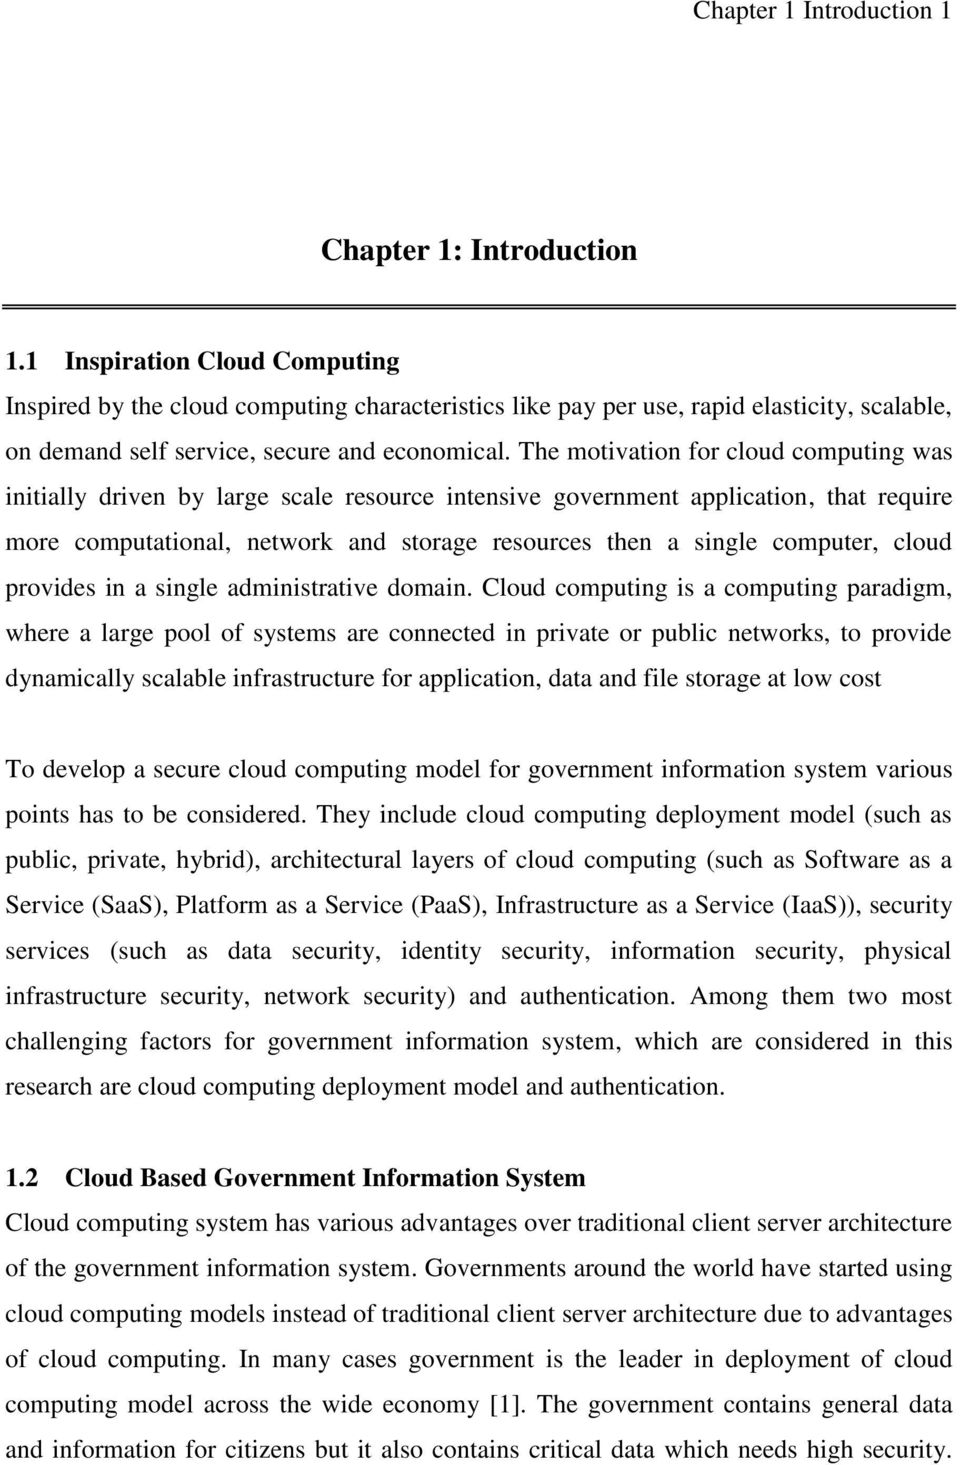 The motivation for cloud computing was initially driven by large scale resource intensive government application, that require more computational, network and storage resources then a single